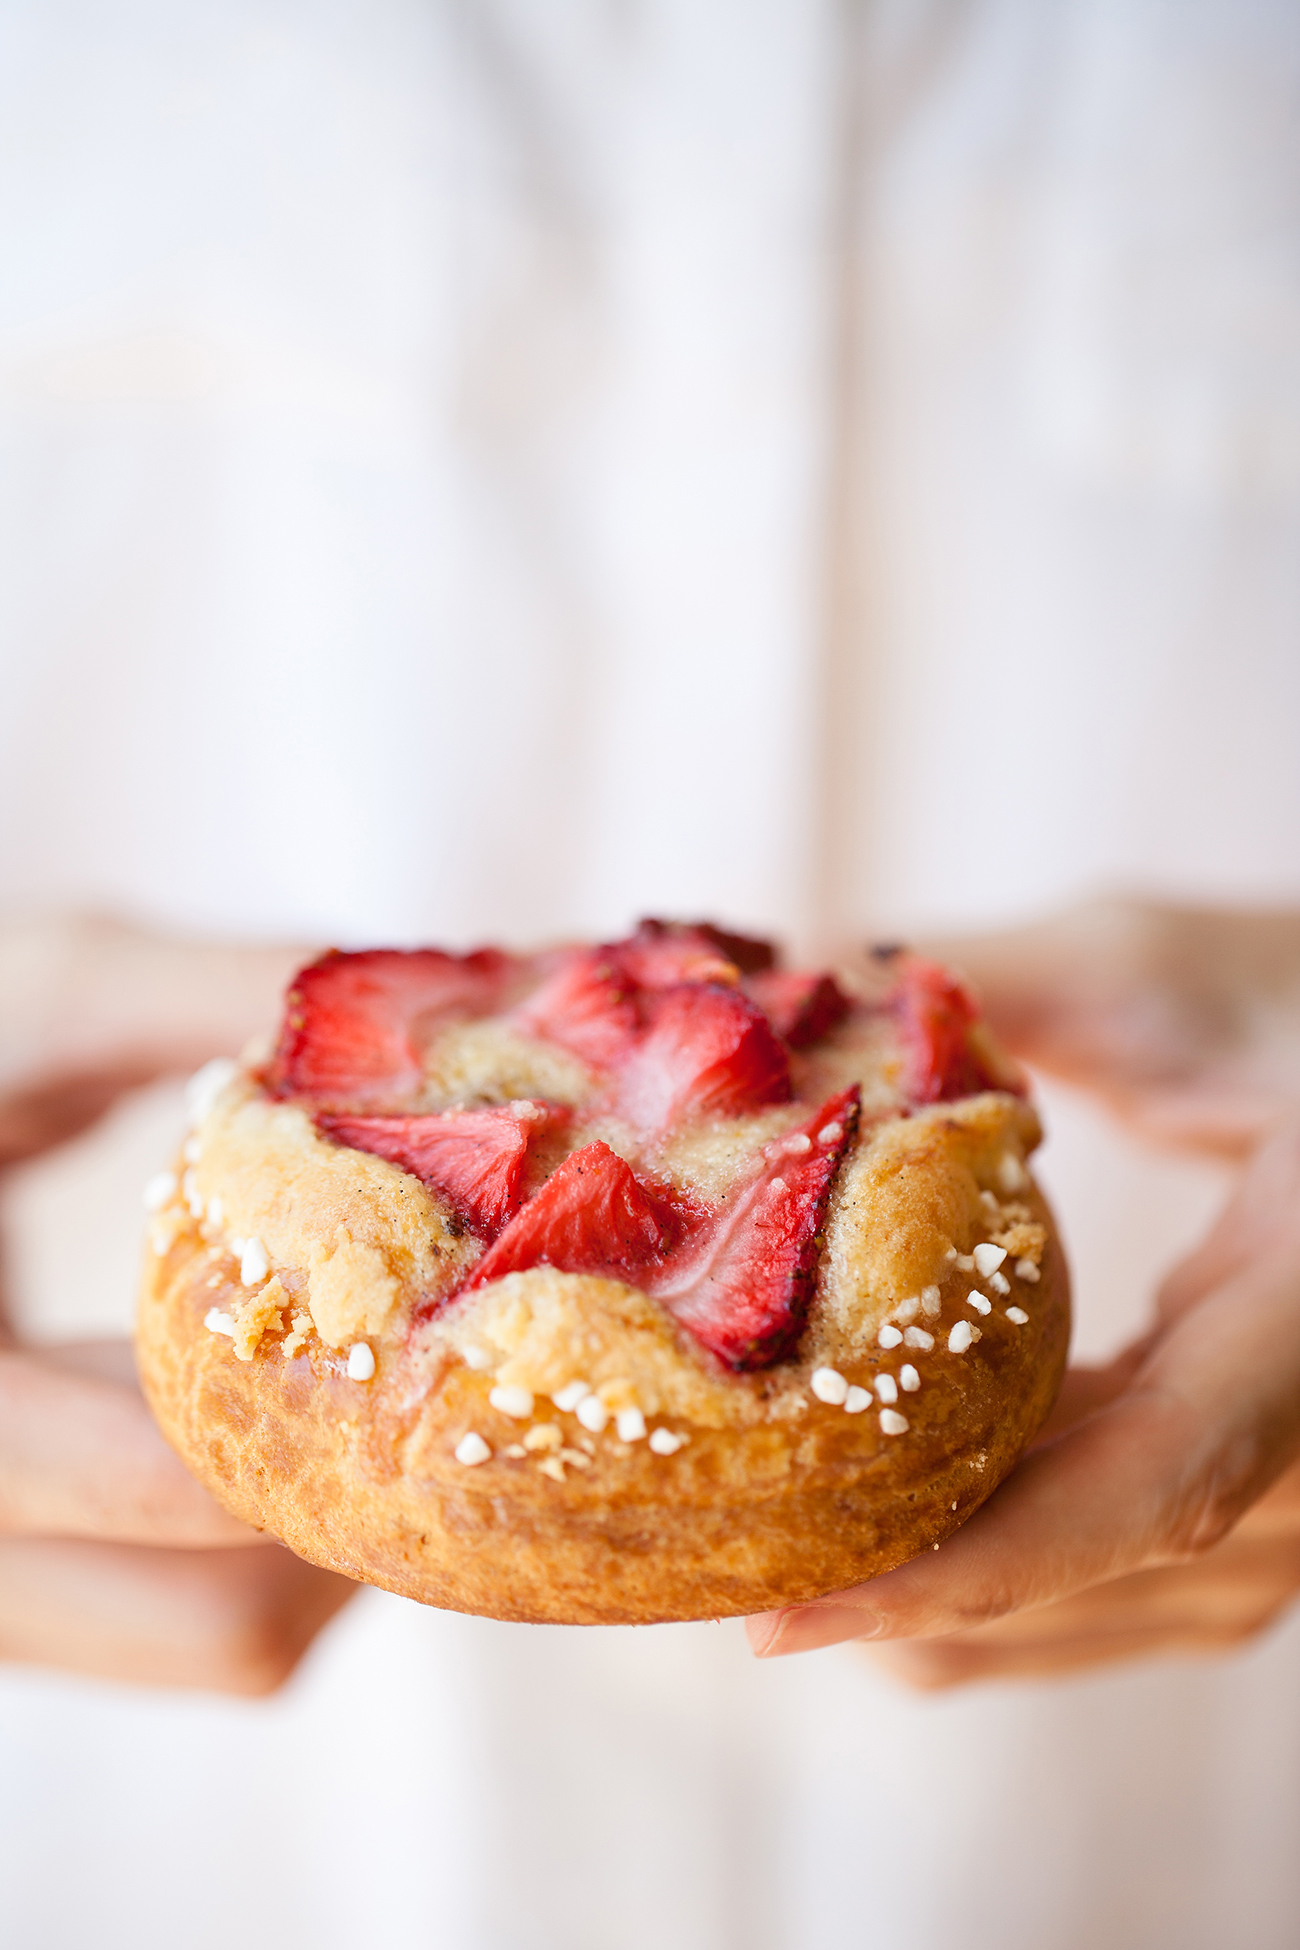 Strawberries & Cream Brioche Pastries | Now, Forager | Teresa Floyd